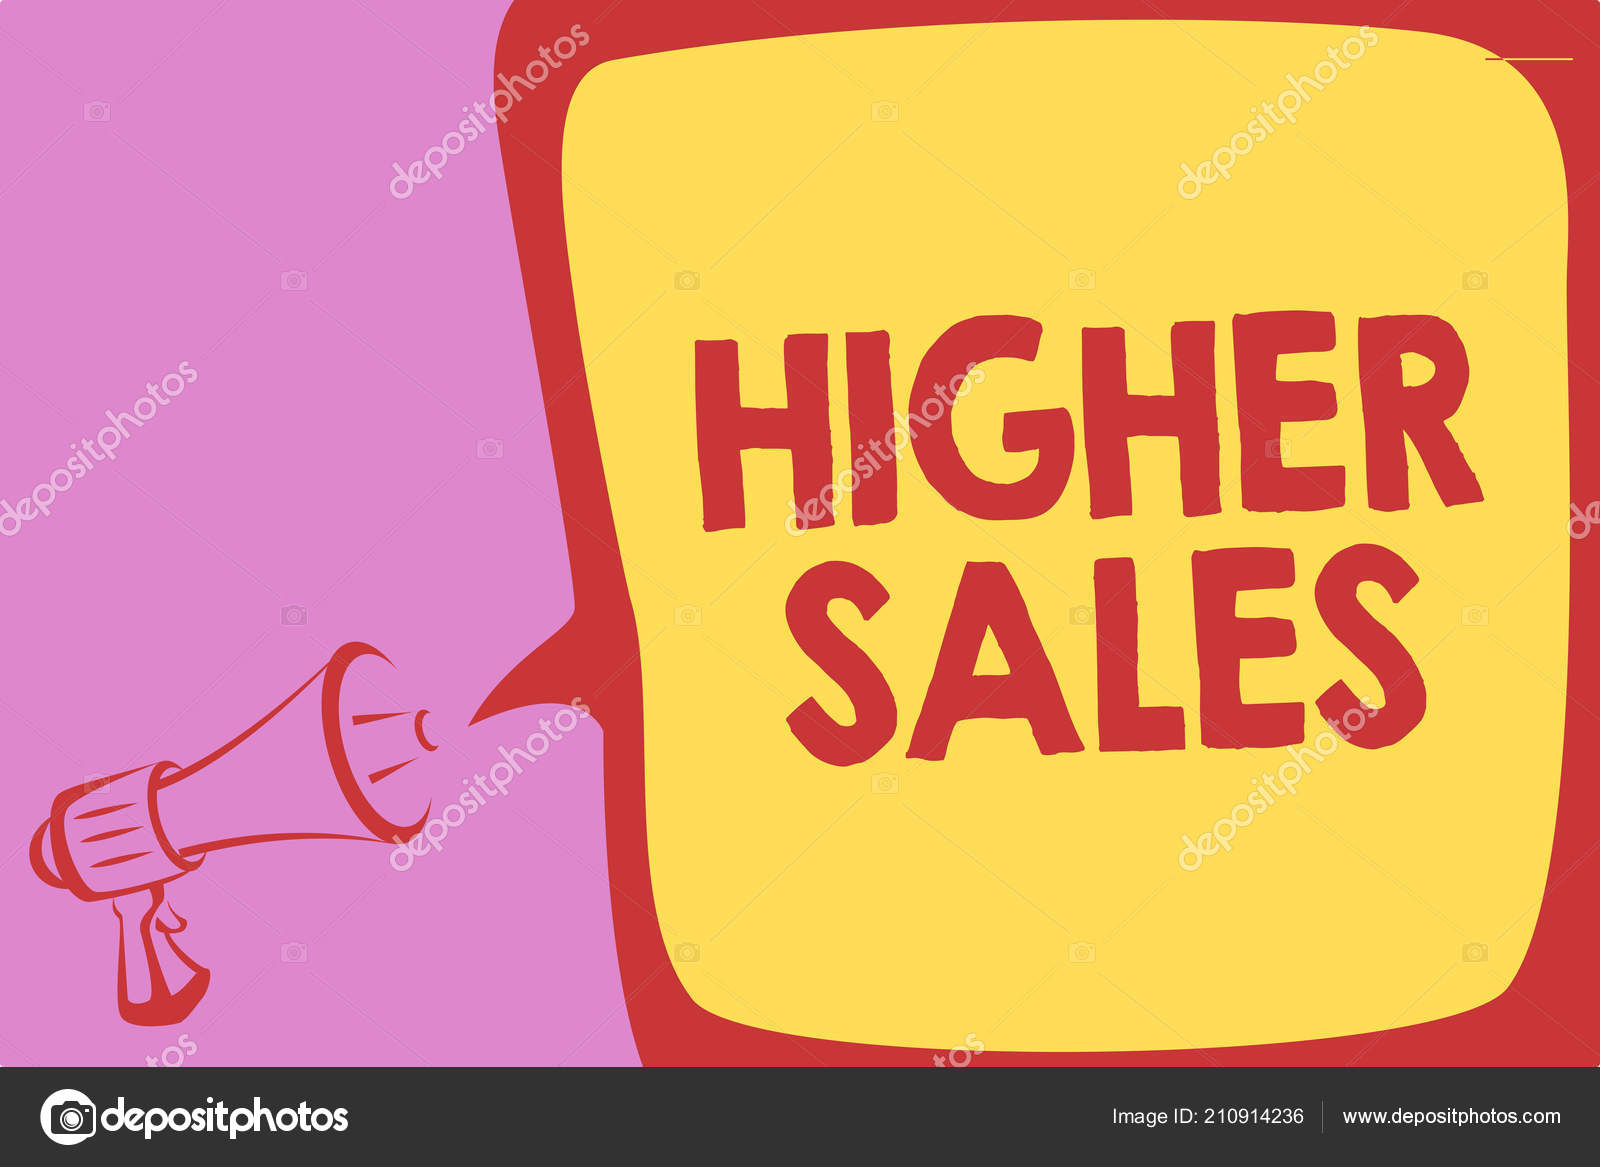 sales speech Speech bubbles for sales download thousands of free vectors on freepik, the finder with more than a million free graphic resources speech bubbles for sales free vector by kraphix / freepik.